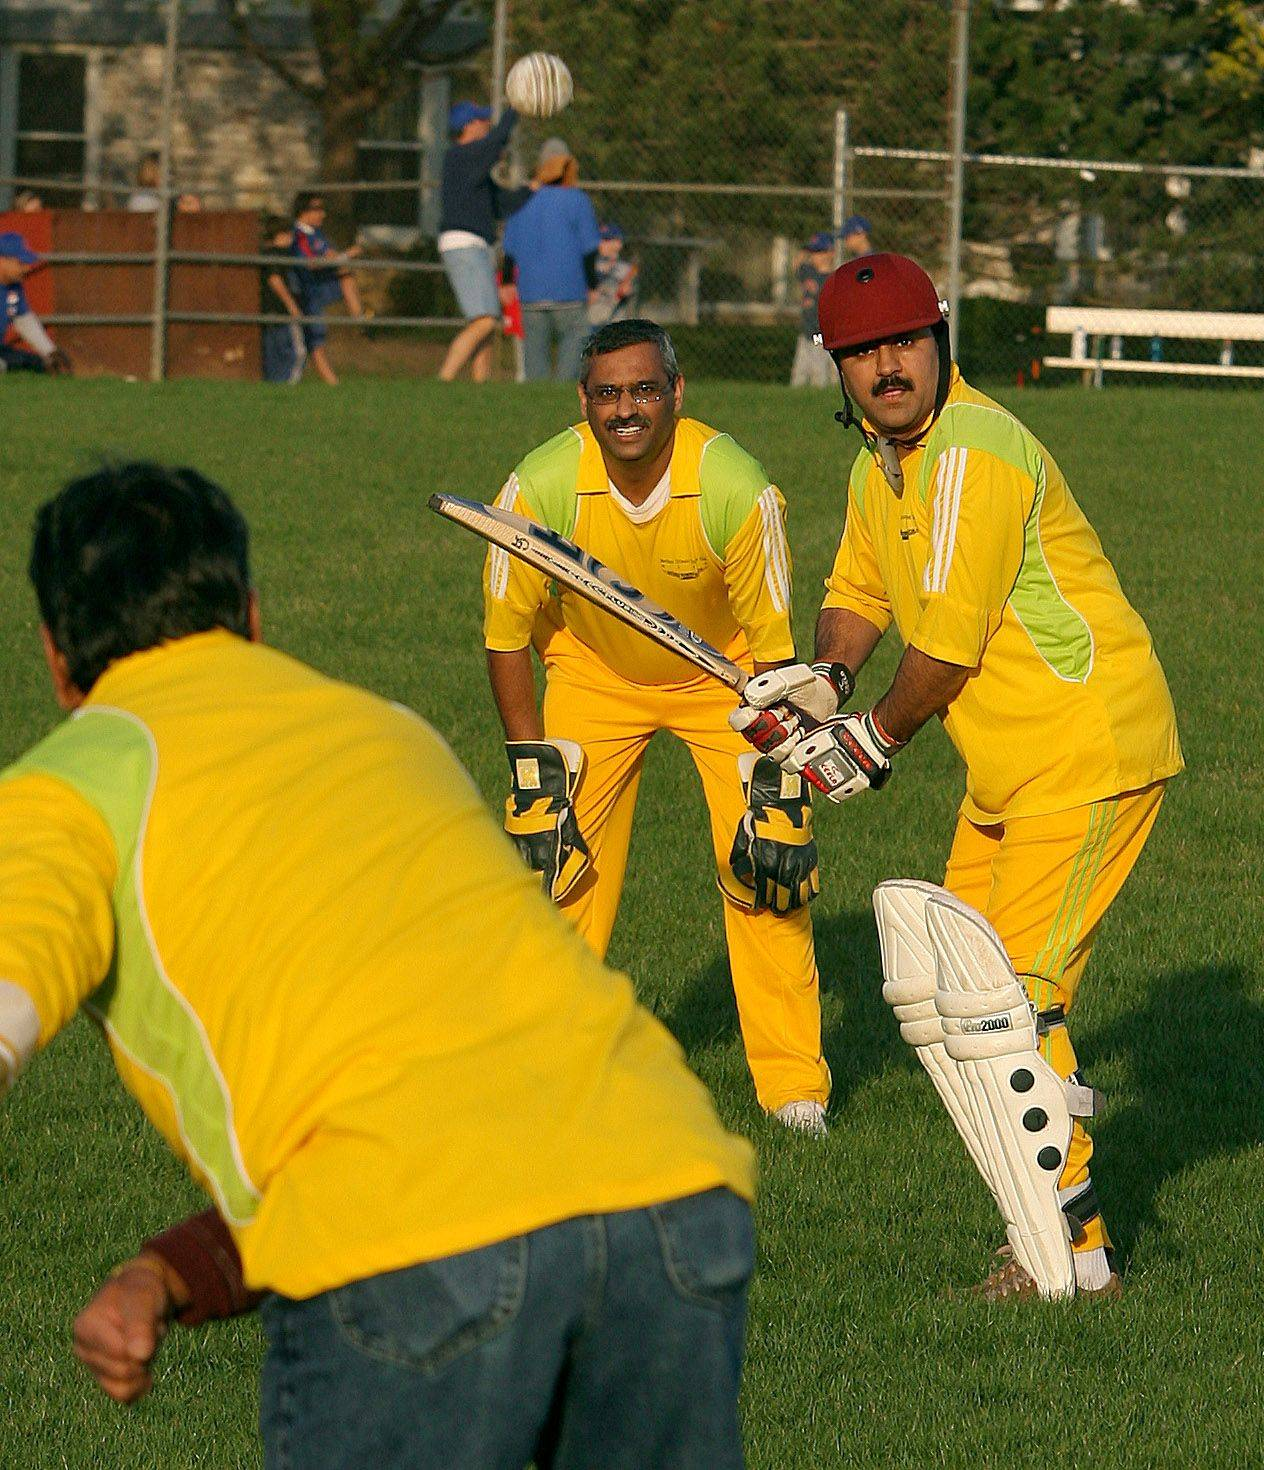 Shiran Kaushik, left, bowls to the batsman Sandeep Bhardwaj as wicket keeper Raj Kosgi observes during a demonstration last year by the Vernon Hills Cricket Club Hawks. The team plays Sunday for the first time on its home field at Century Park.